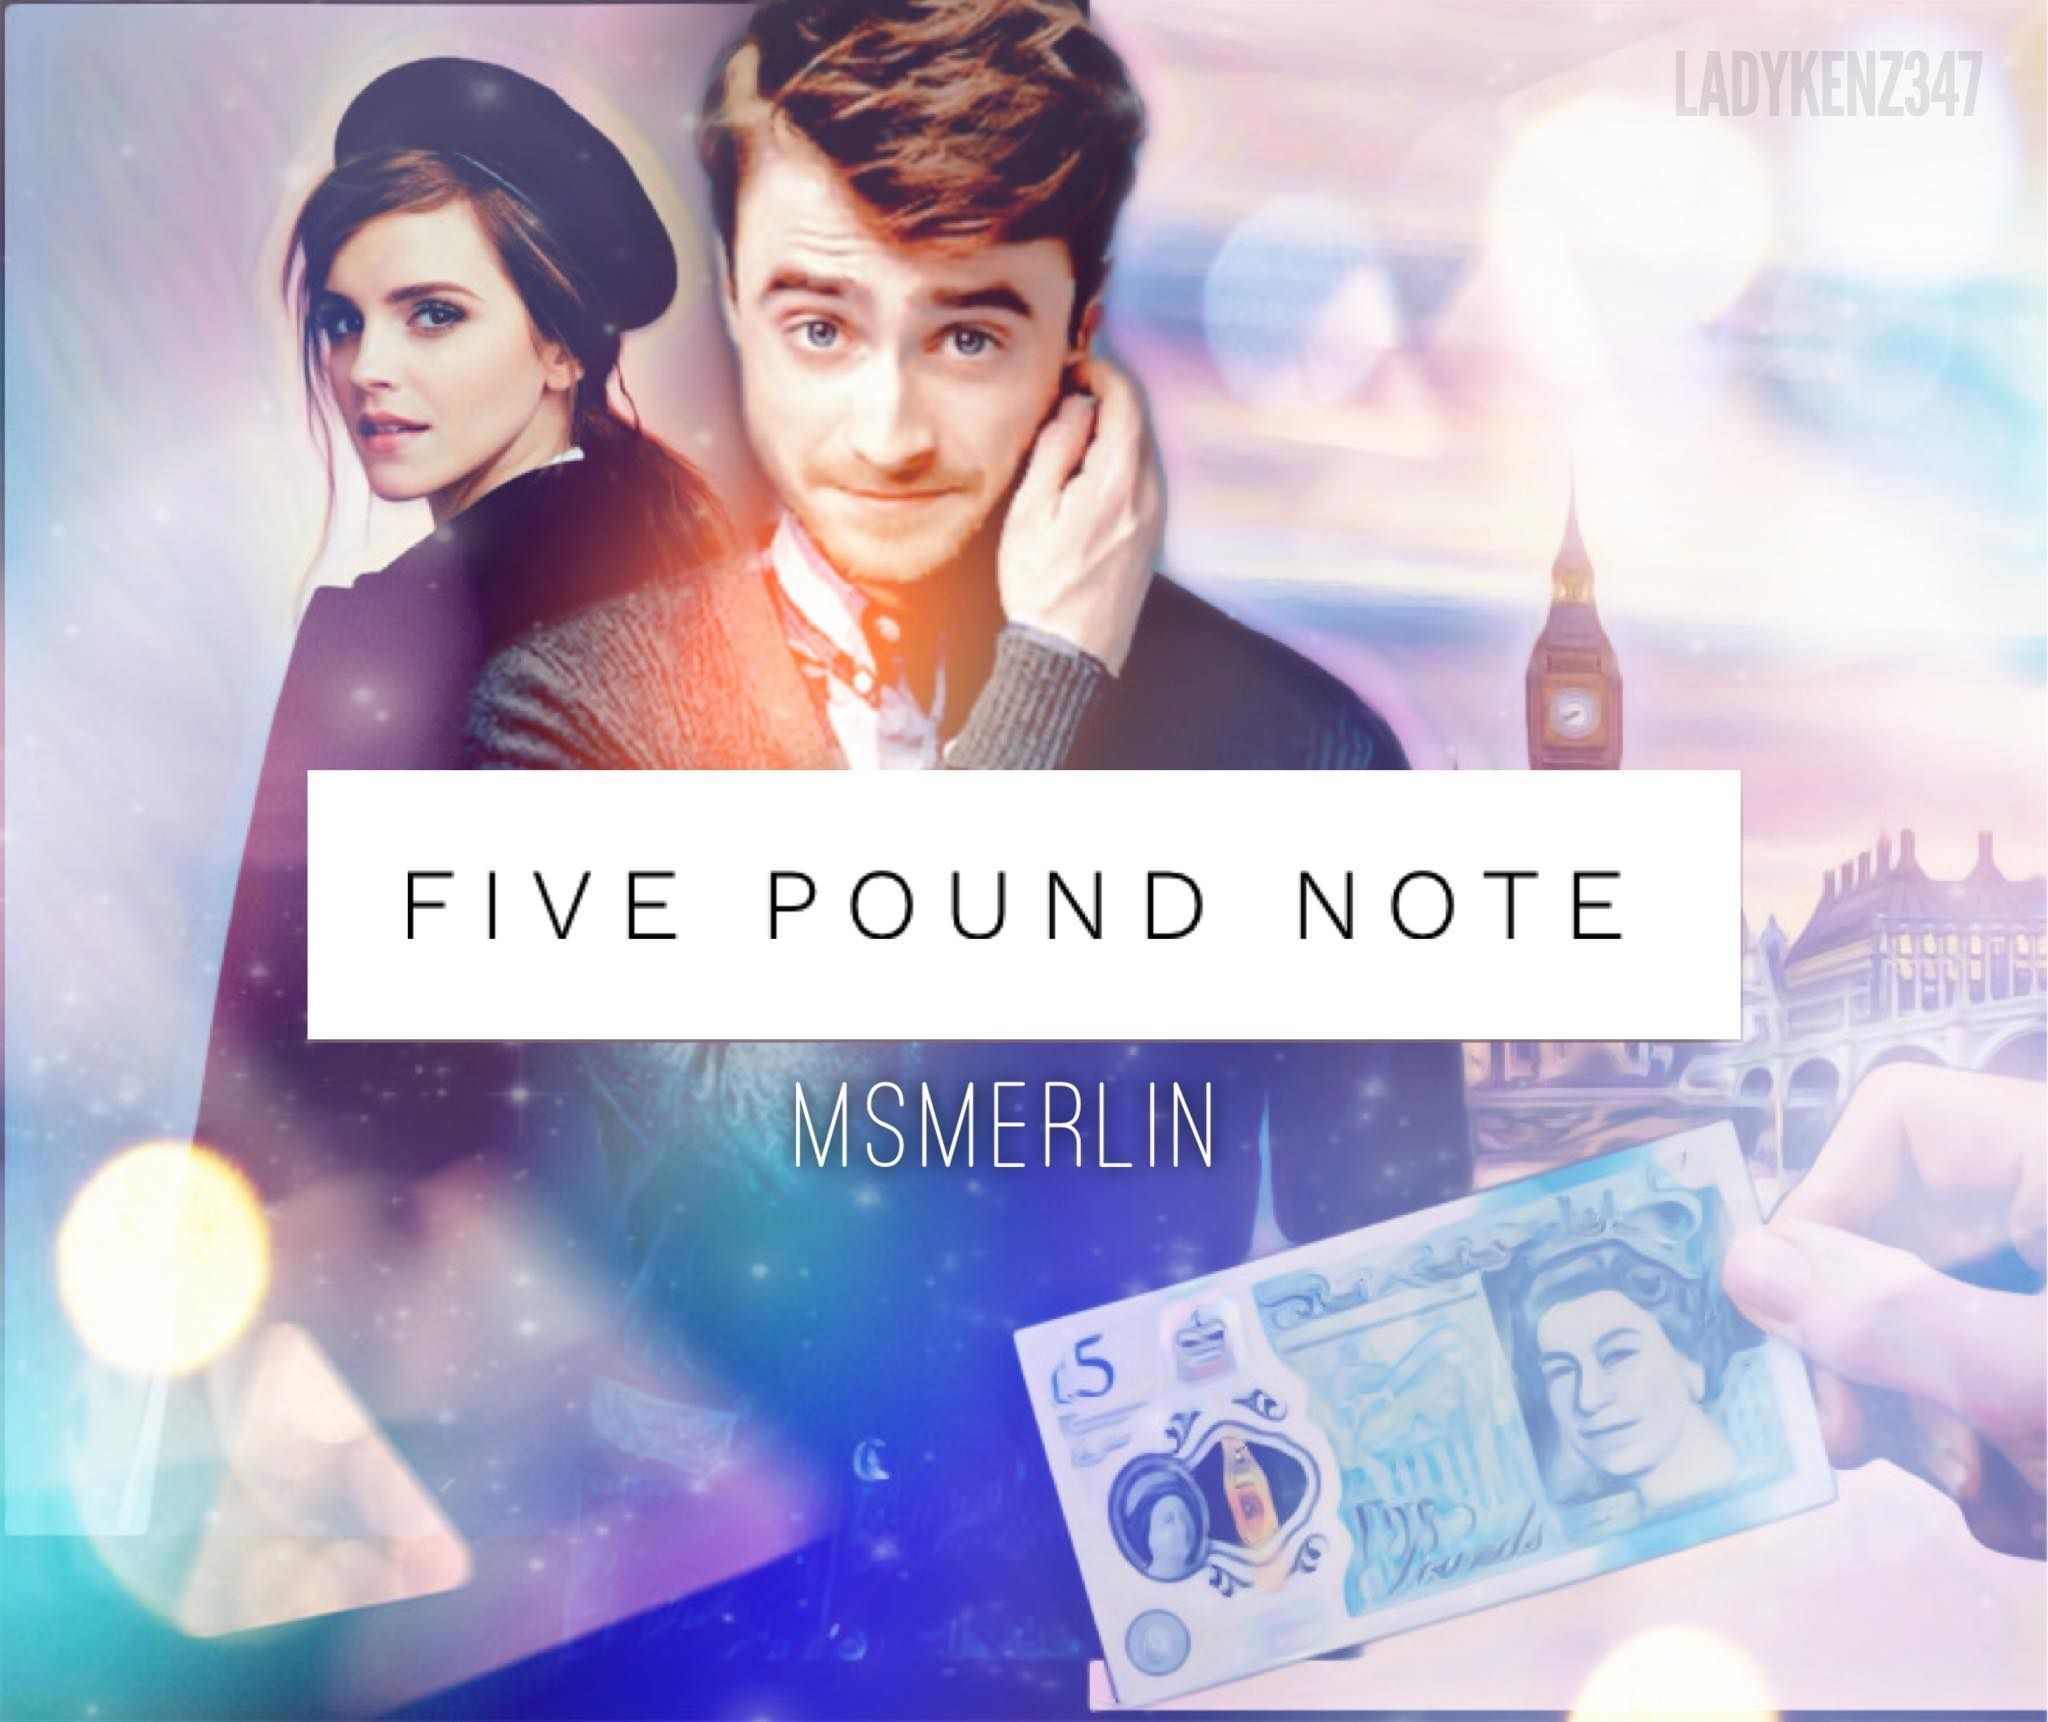 Five Pound Note Chapter 1 Msmerlin Harry Potter J K Rowling Archive Of Our Own Archive Of Our Own Harry And Hermione Harry